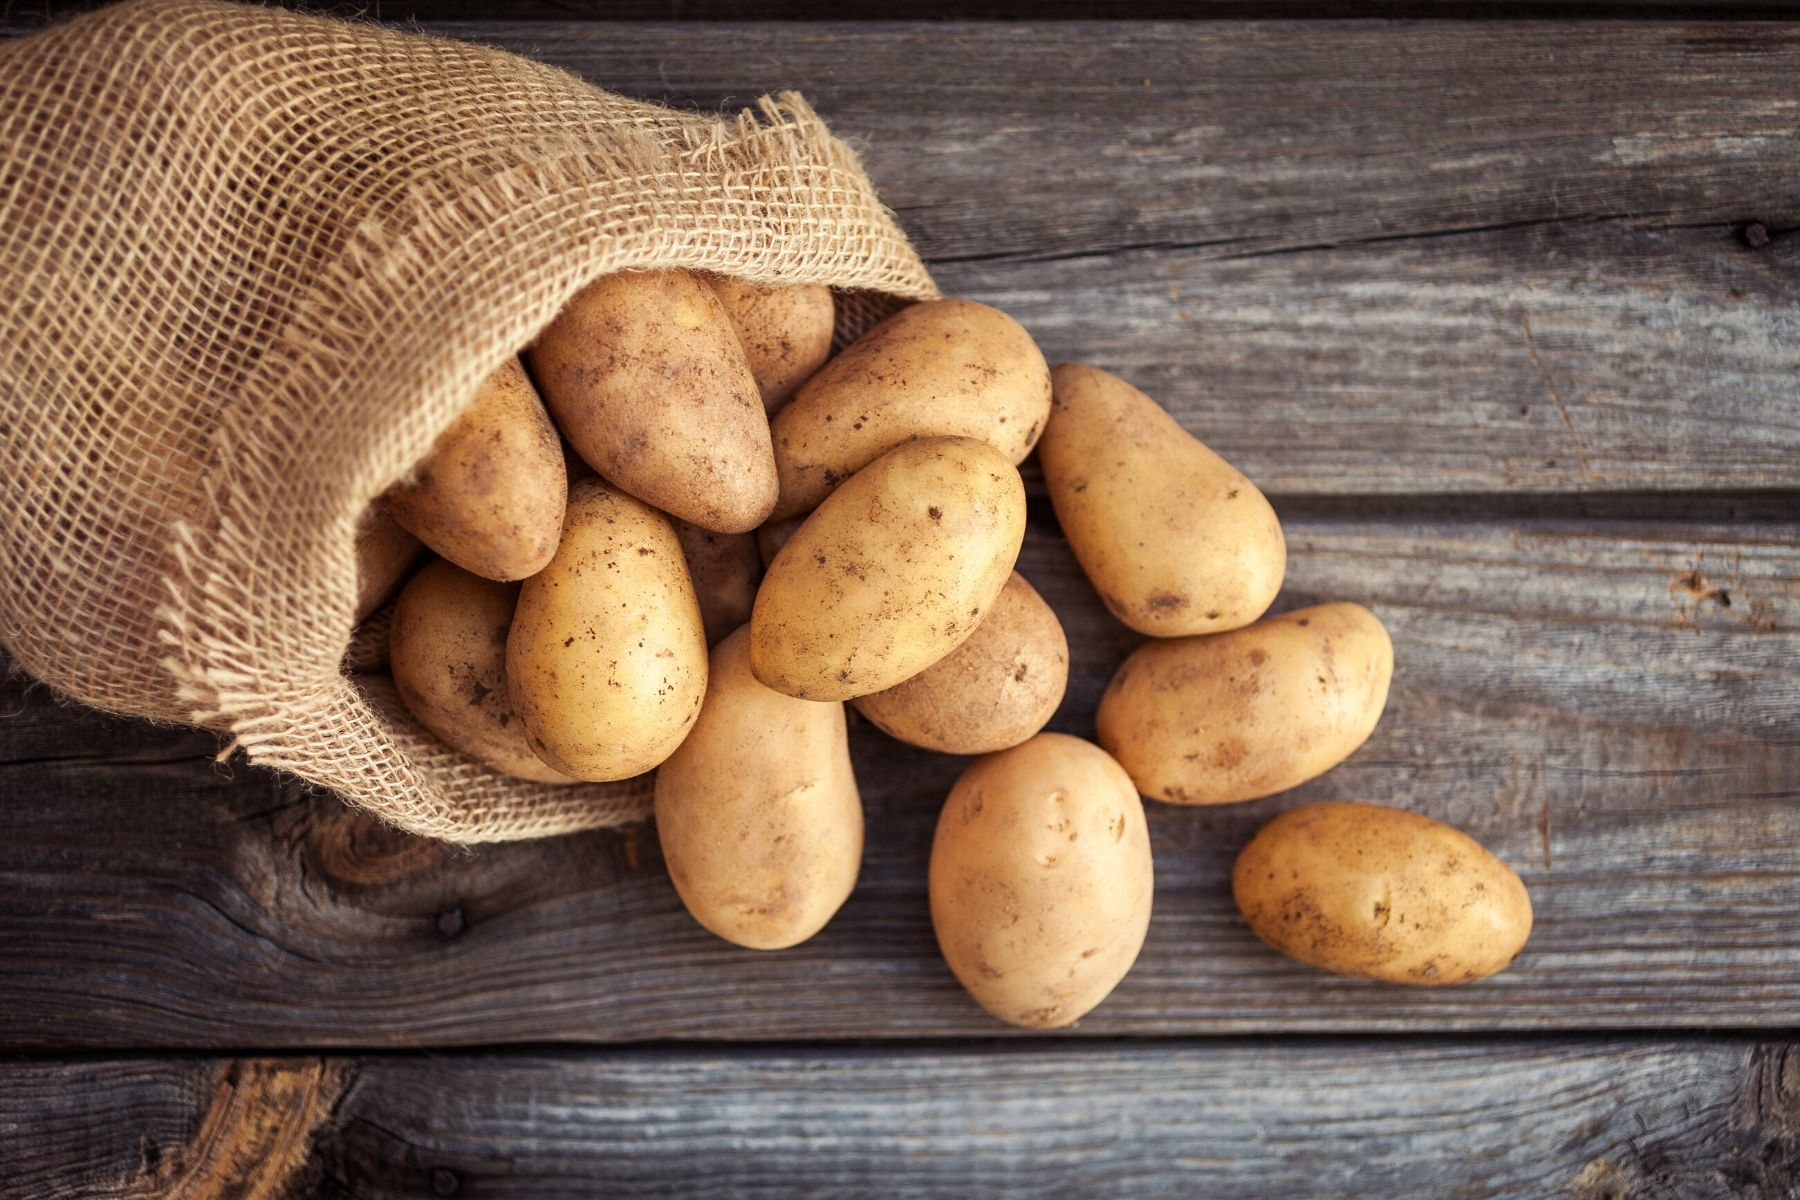 HappyFresh_How_To_Store_Foods_Properly_Potatoes